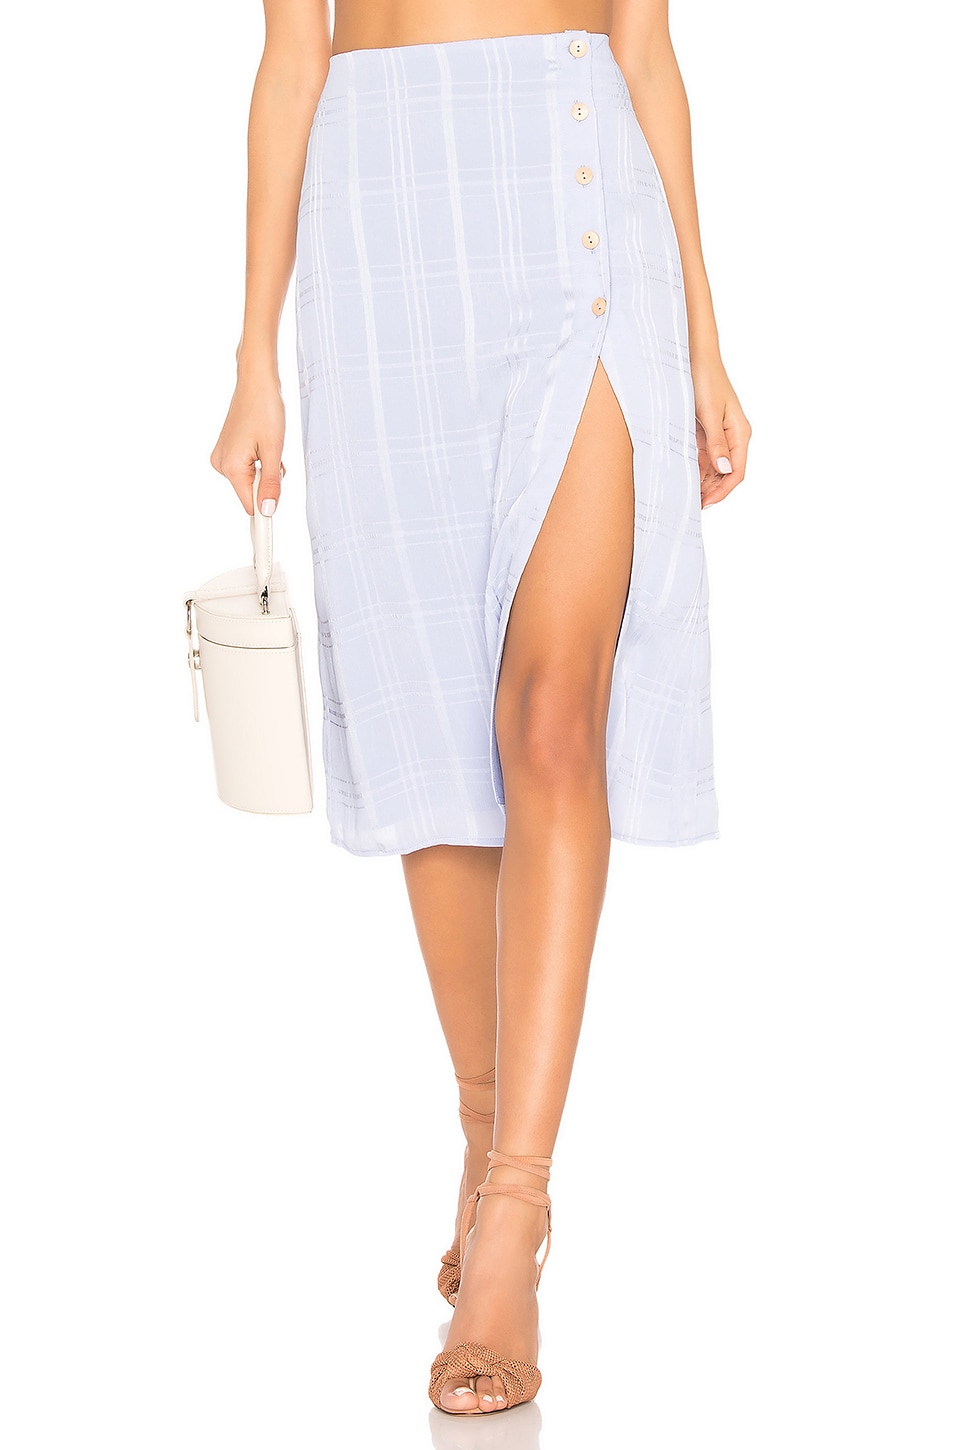 Privacy Please Burbank Skirt in Periwinkle